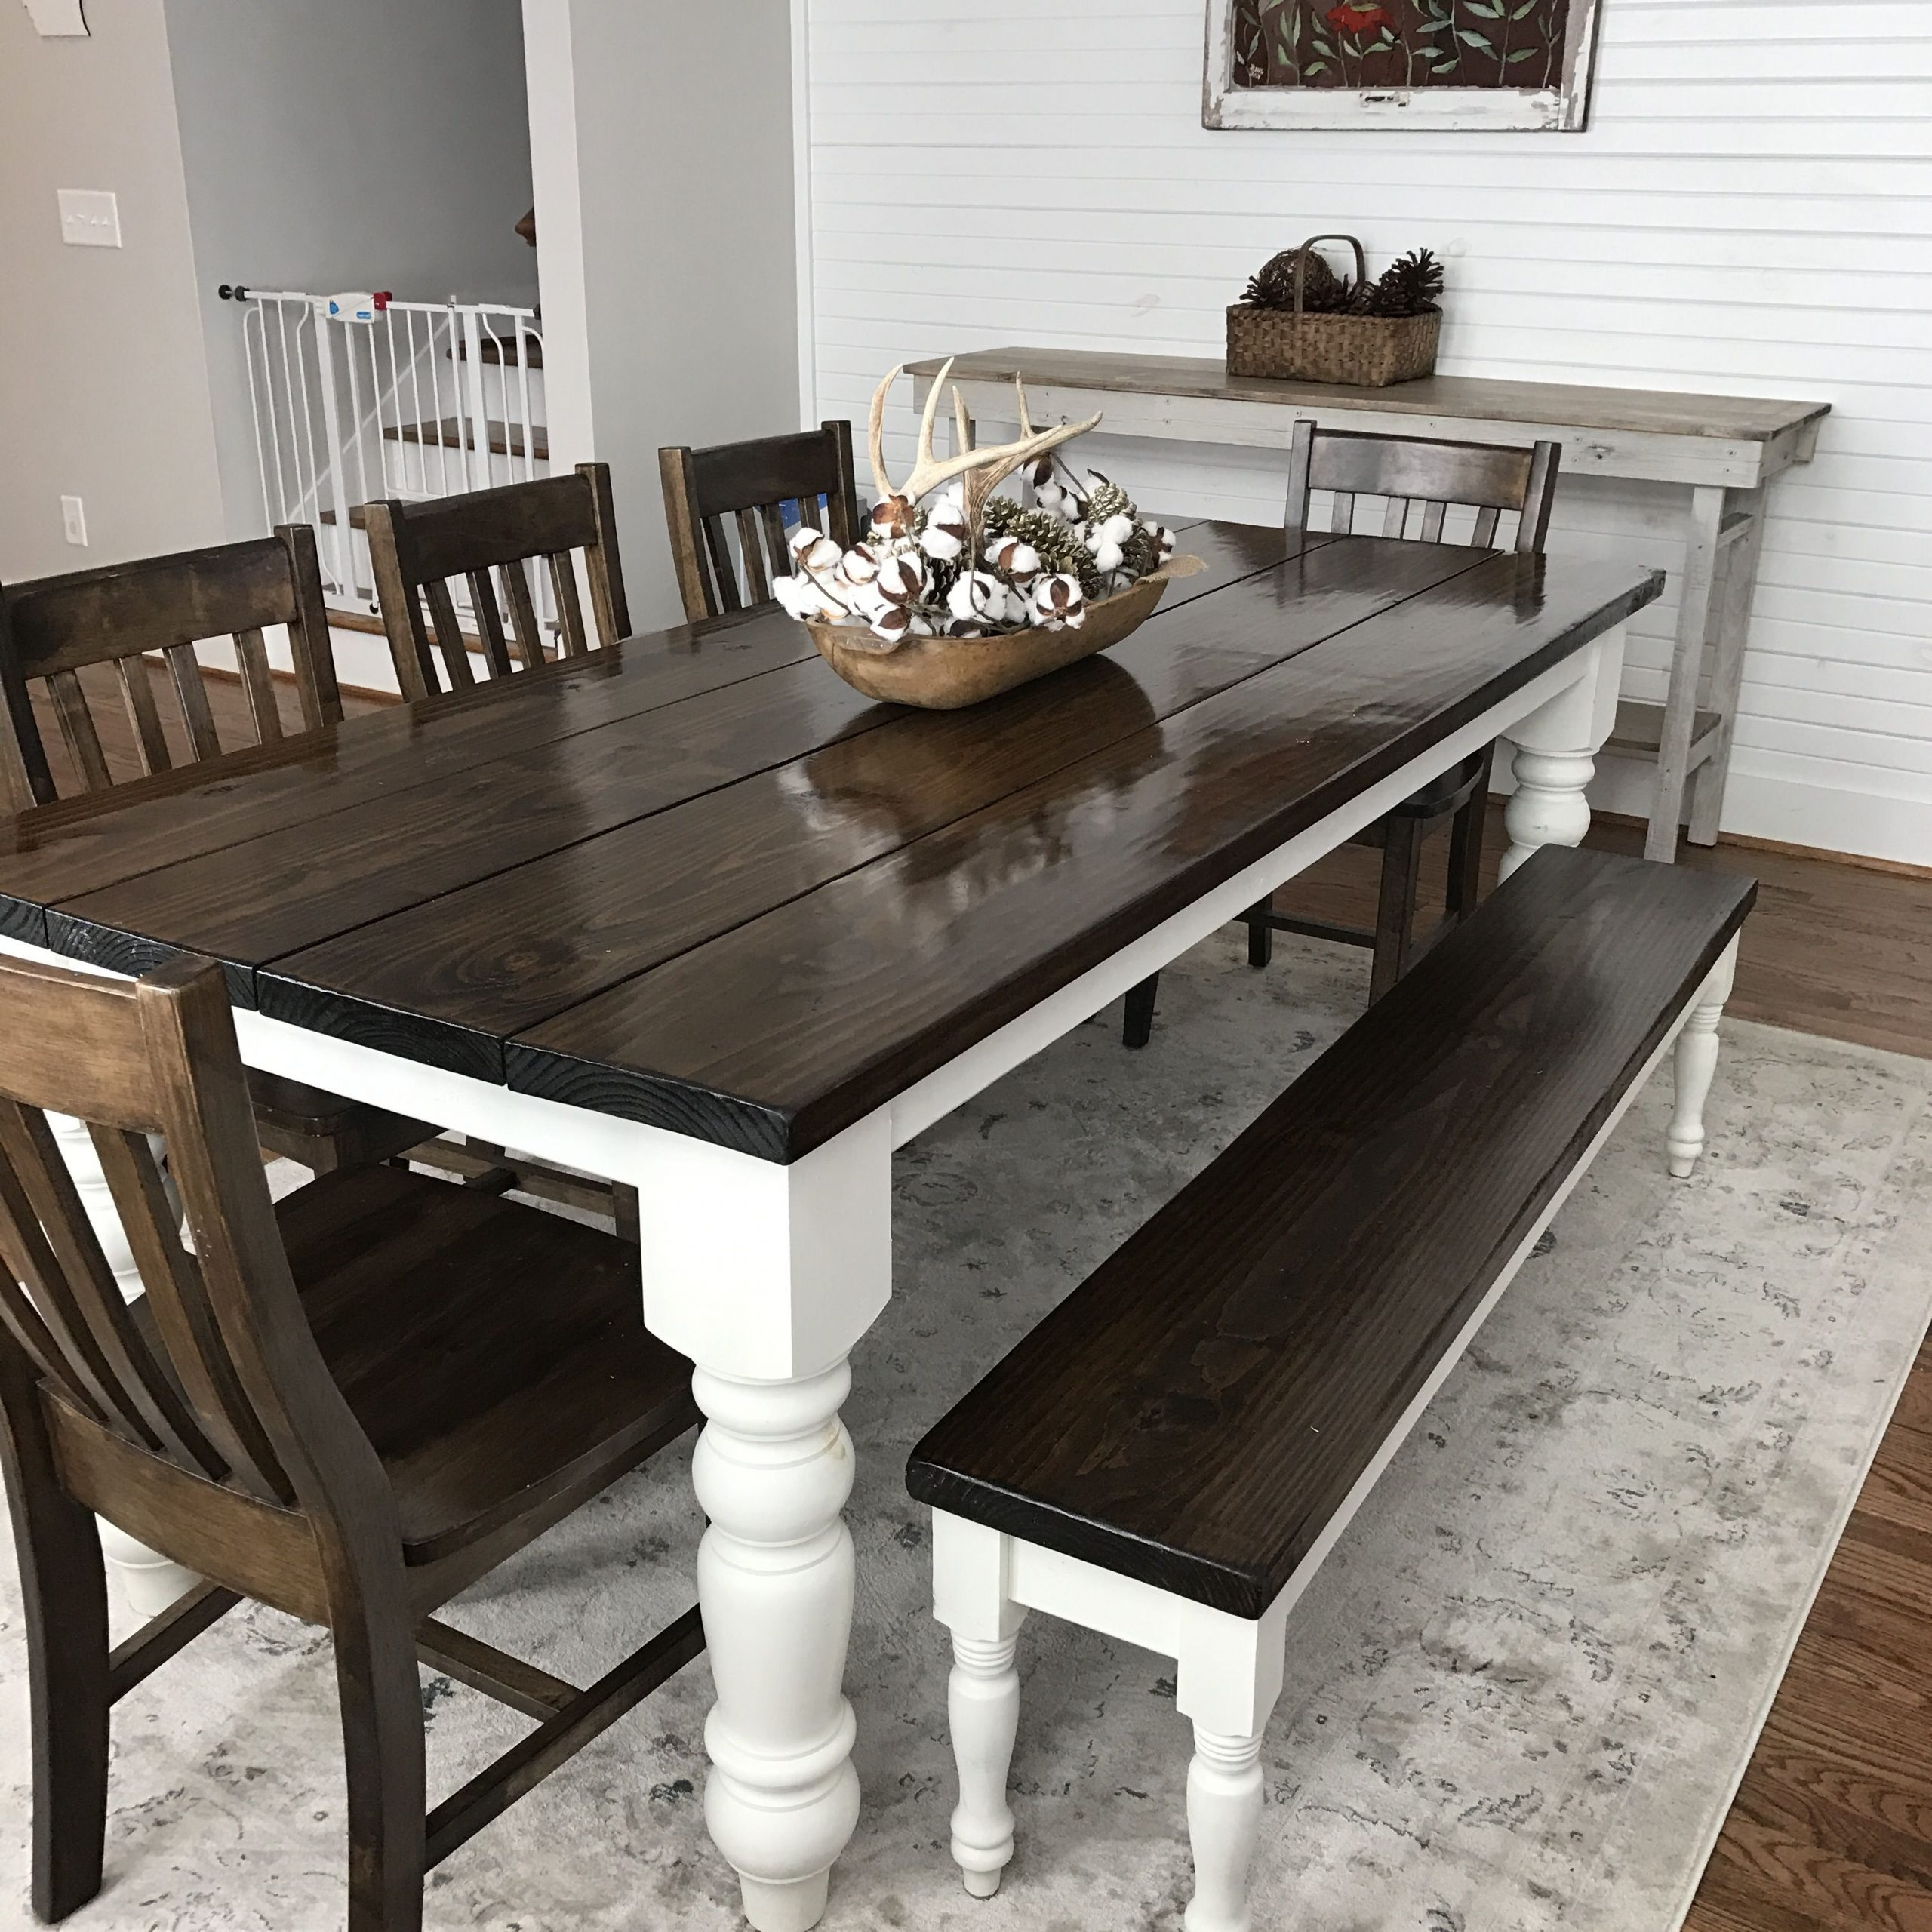 Walnut And Antique White Finish Contemporary Country Dining Tables Intended For Current Custom Built, Solid Wood Modern Farmhouse Dining Furniture (View 22 of 30)